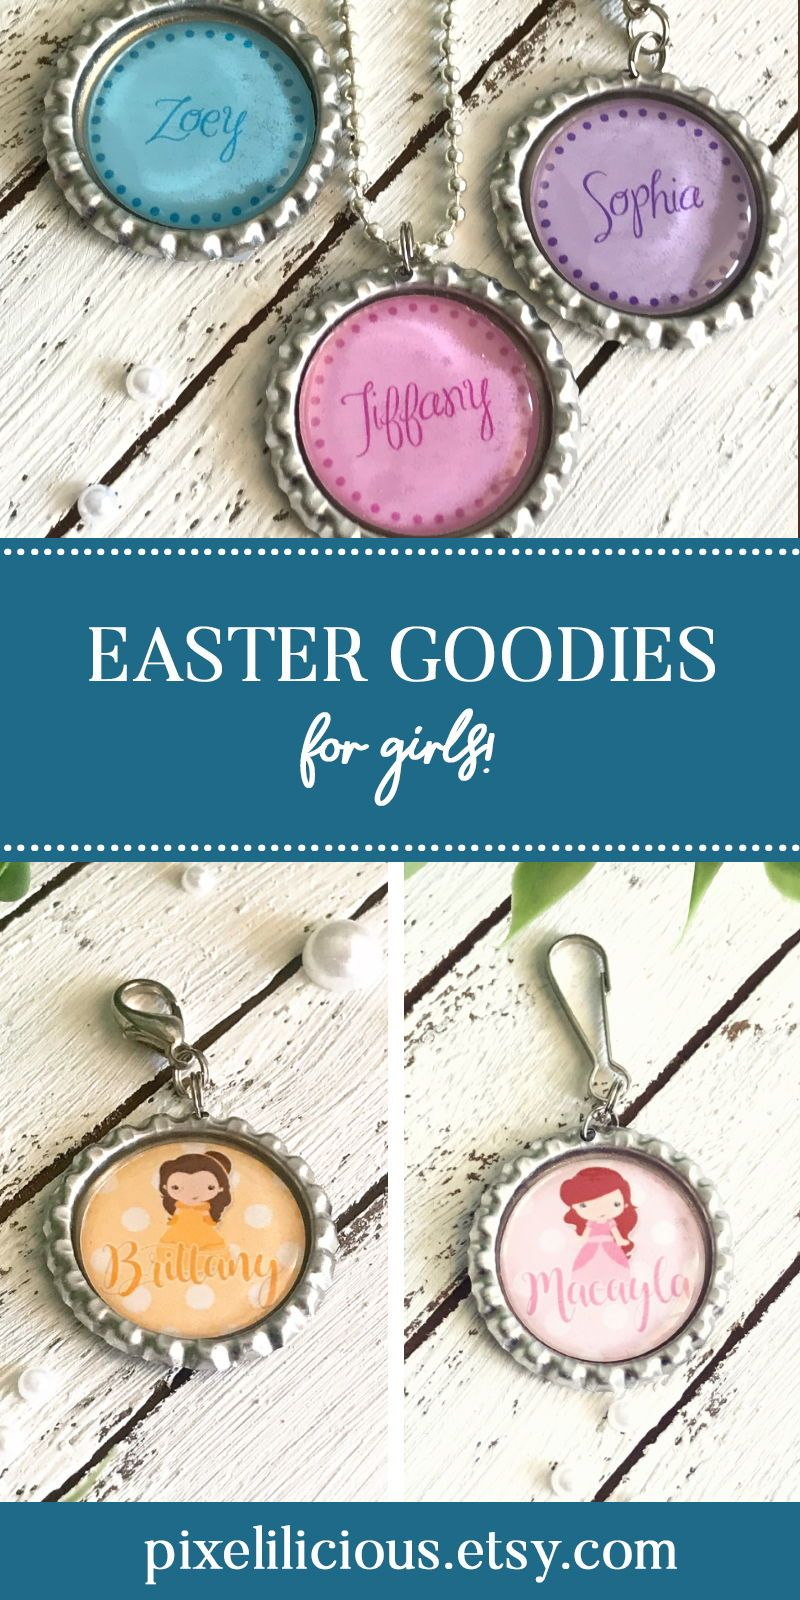 Find The Perfect Little Something For Your Easter Baskets This Year